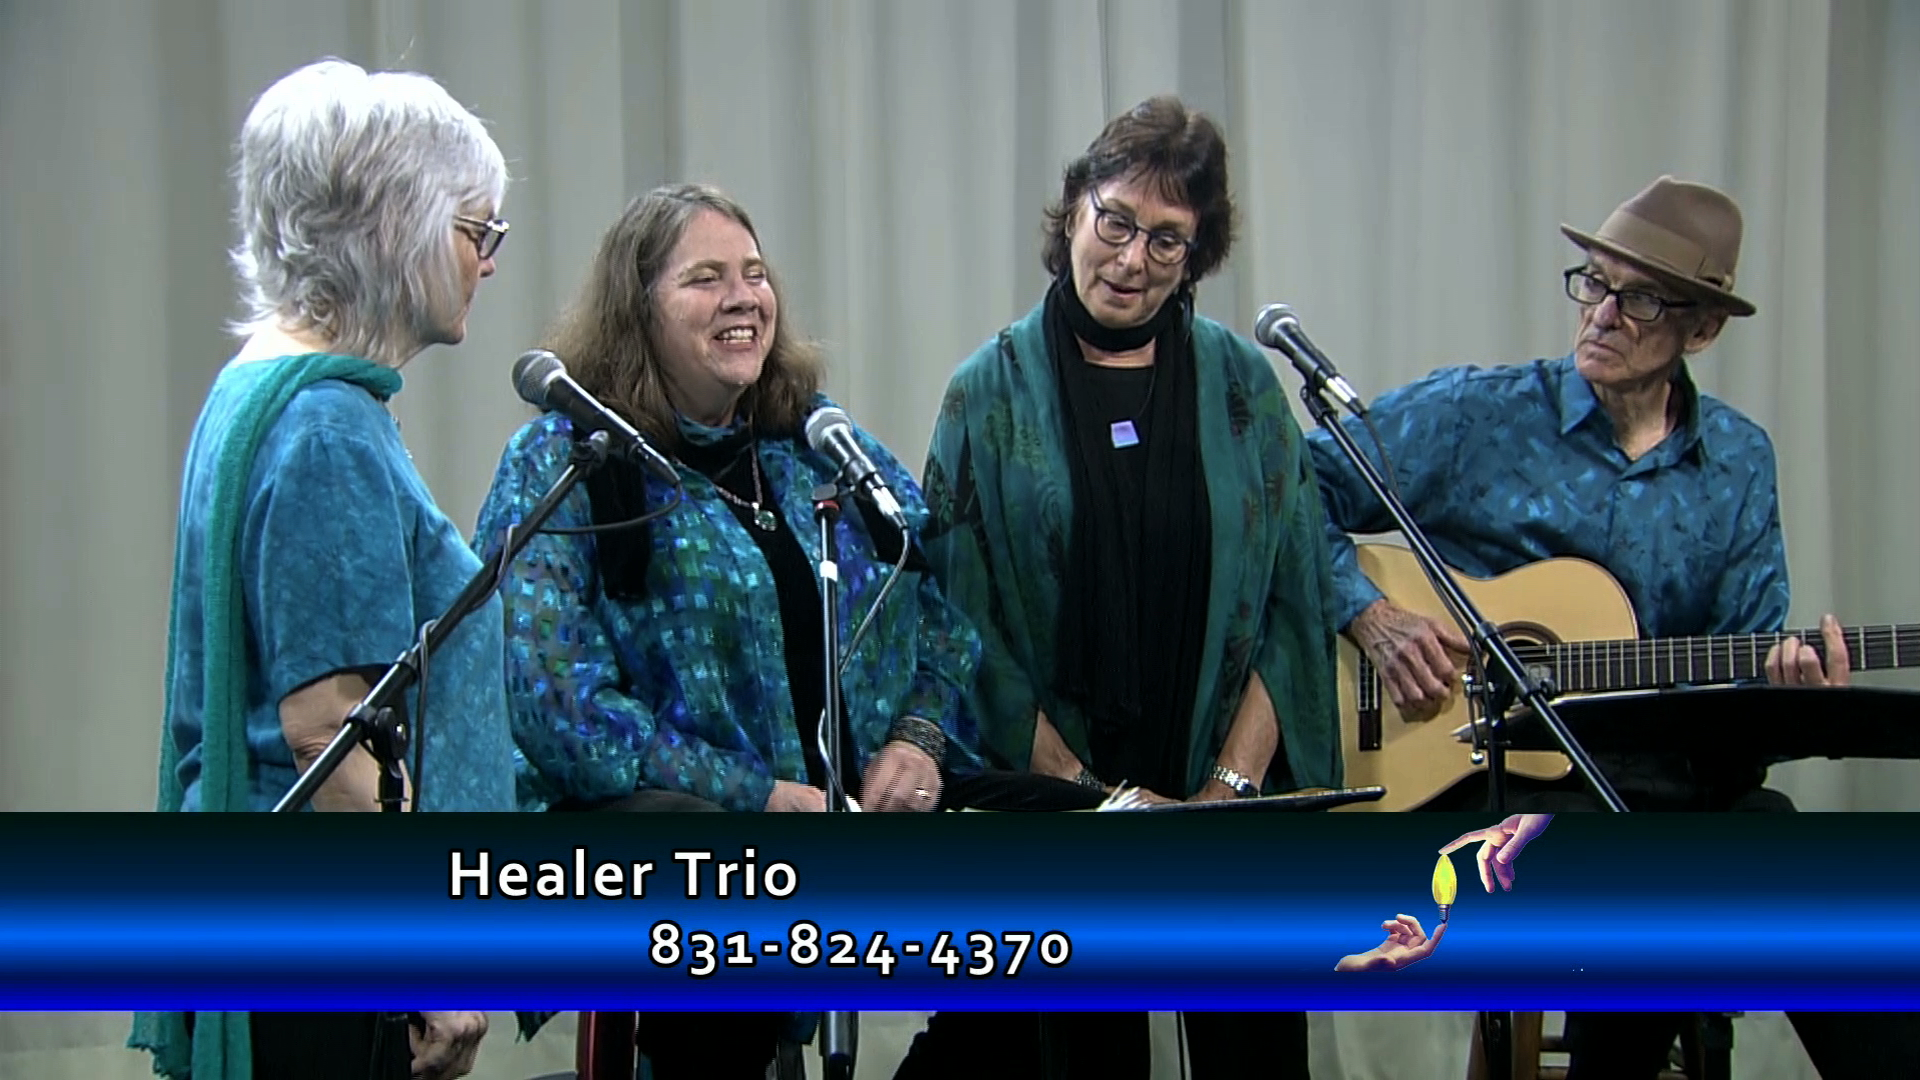 Healer Trio – Singing for Community